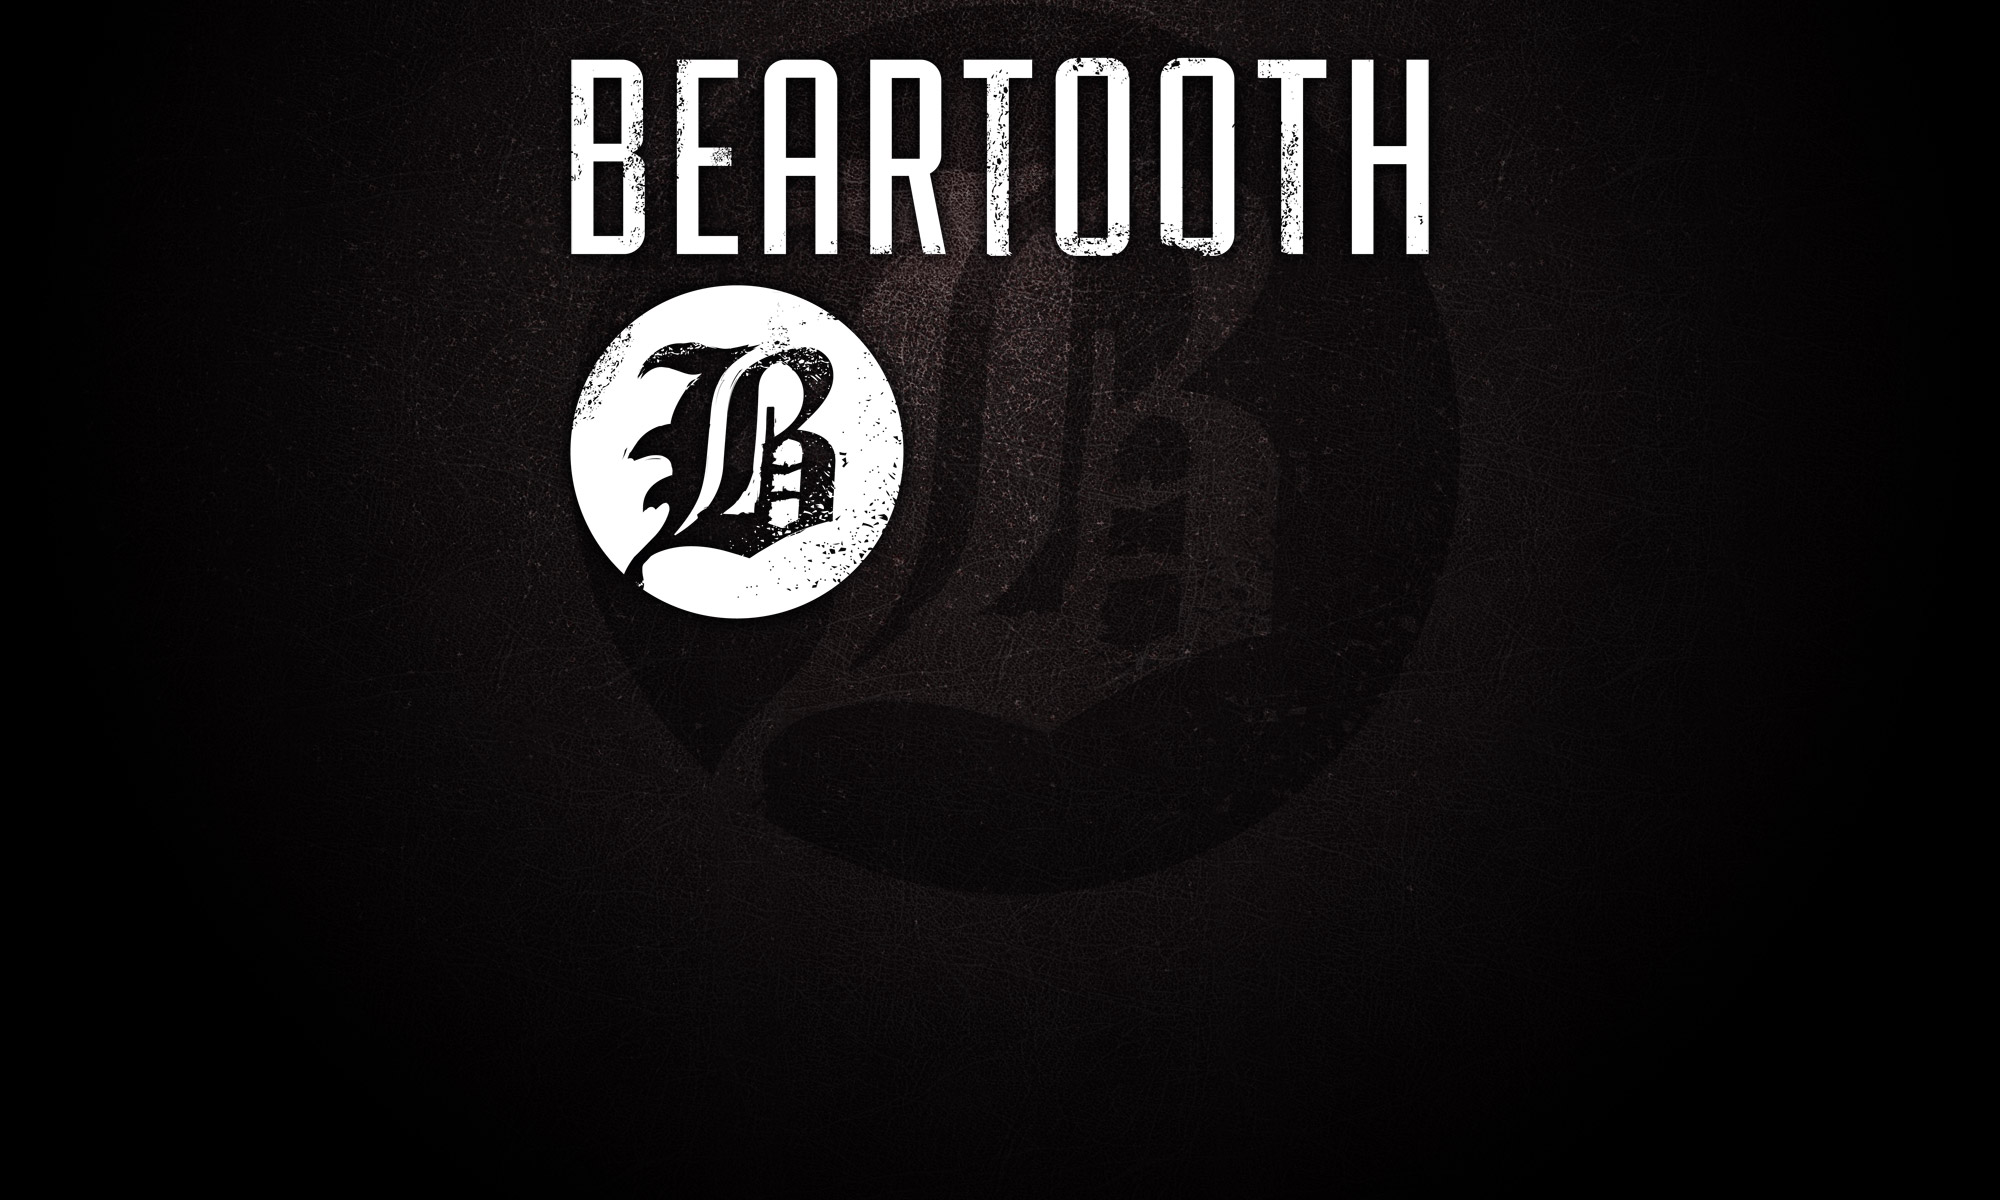 Beartooth offering their EP up for free - HM Magazine